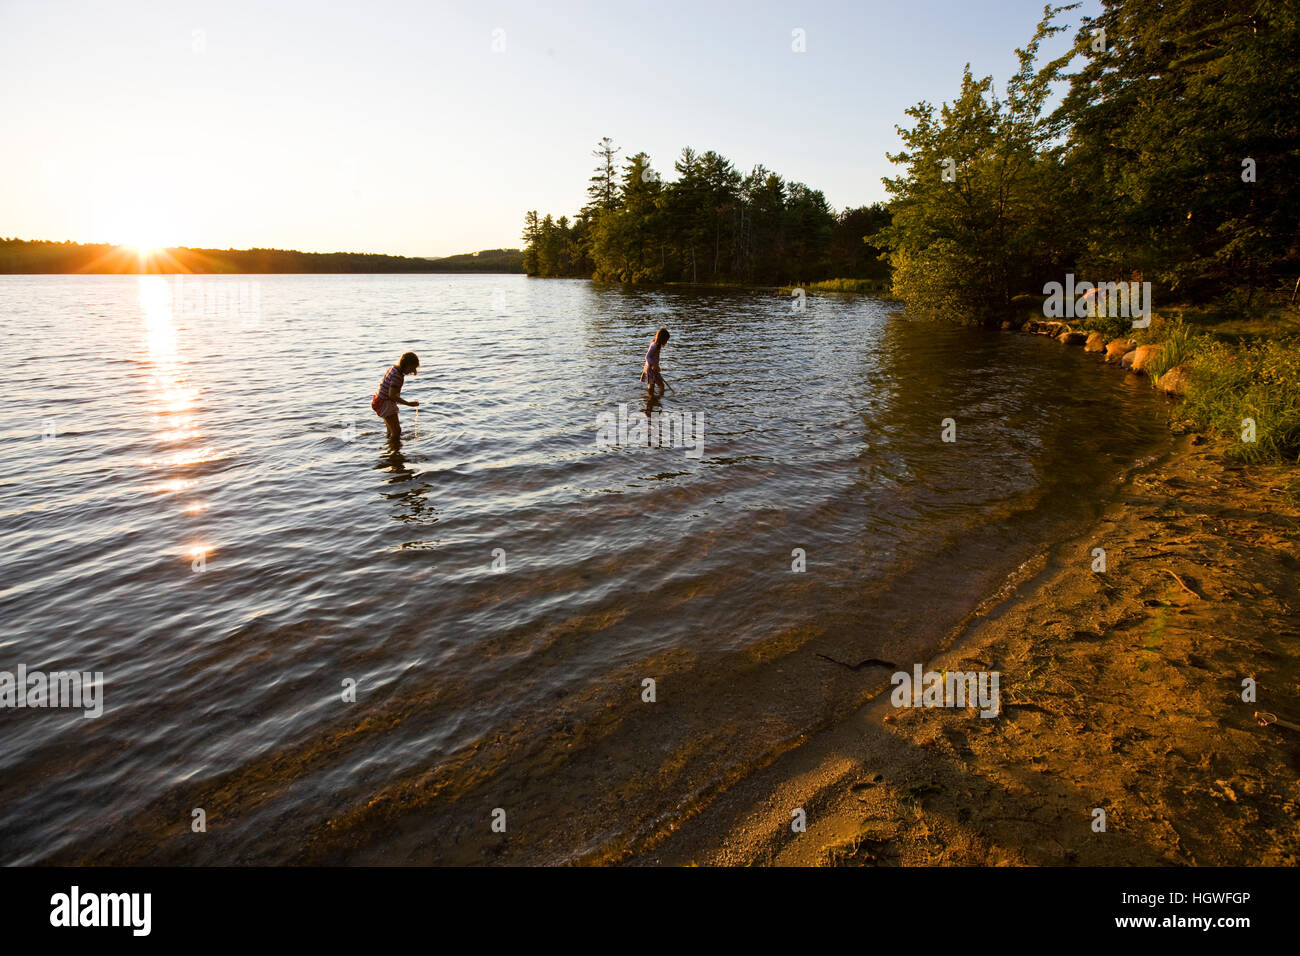 Greenfield Beach Stock Photos Greenfield Beach Stock Images Alamy